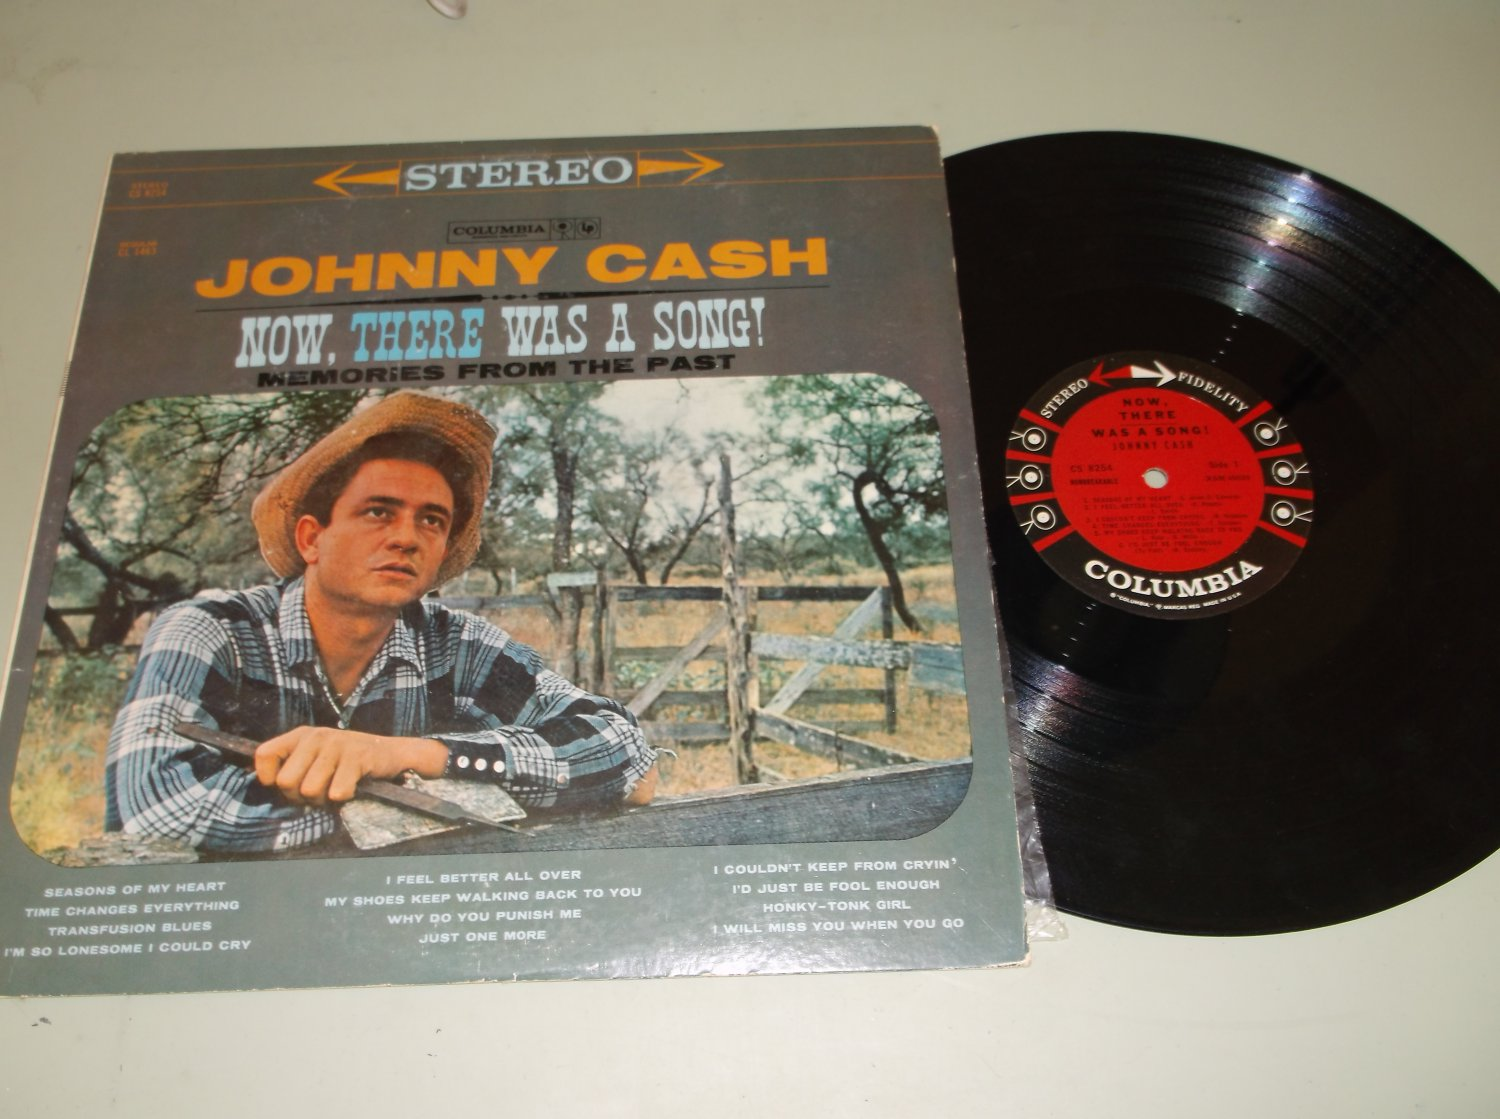 Johnny Cash - Now There Was A Song - COLUMBIA CS-8254 Country Record LP